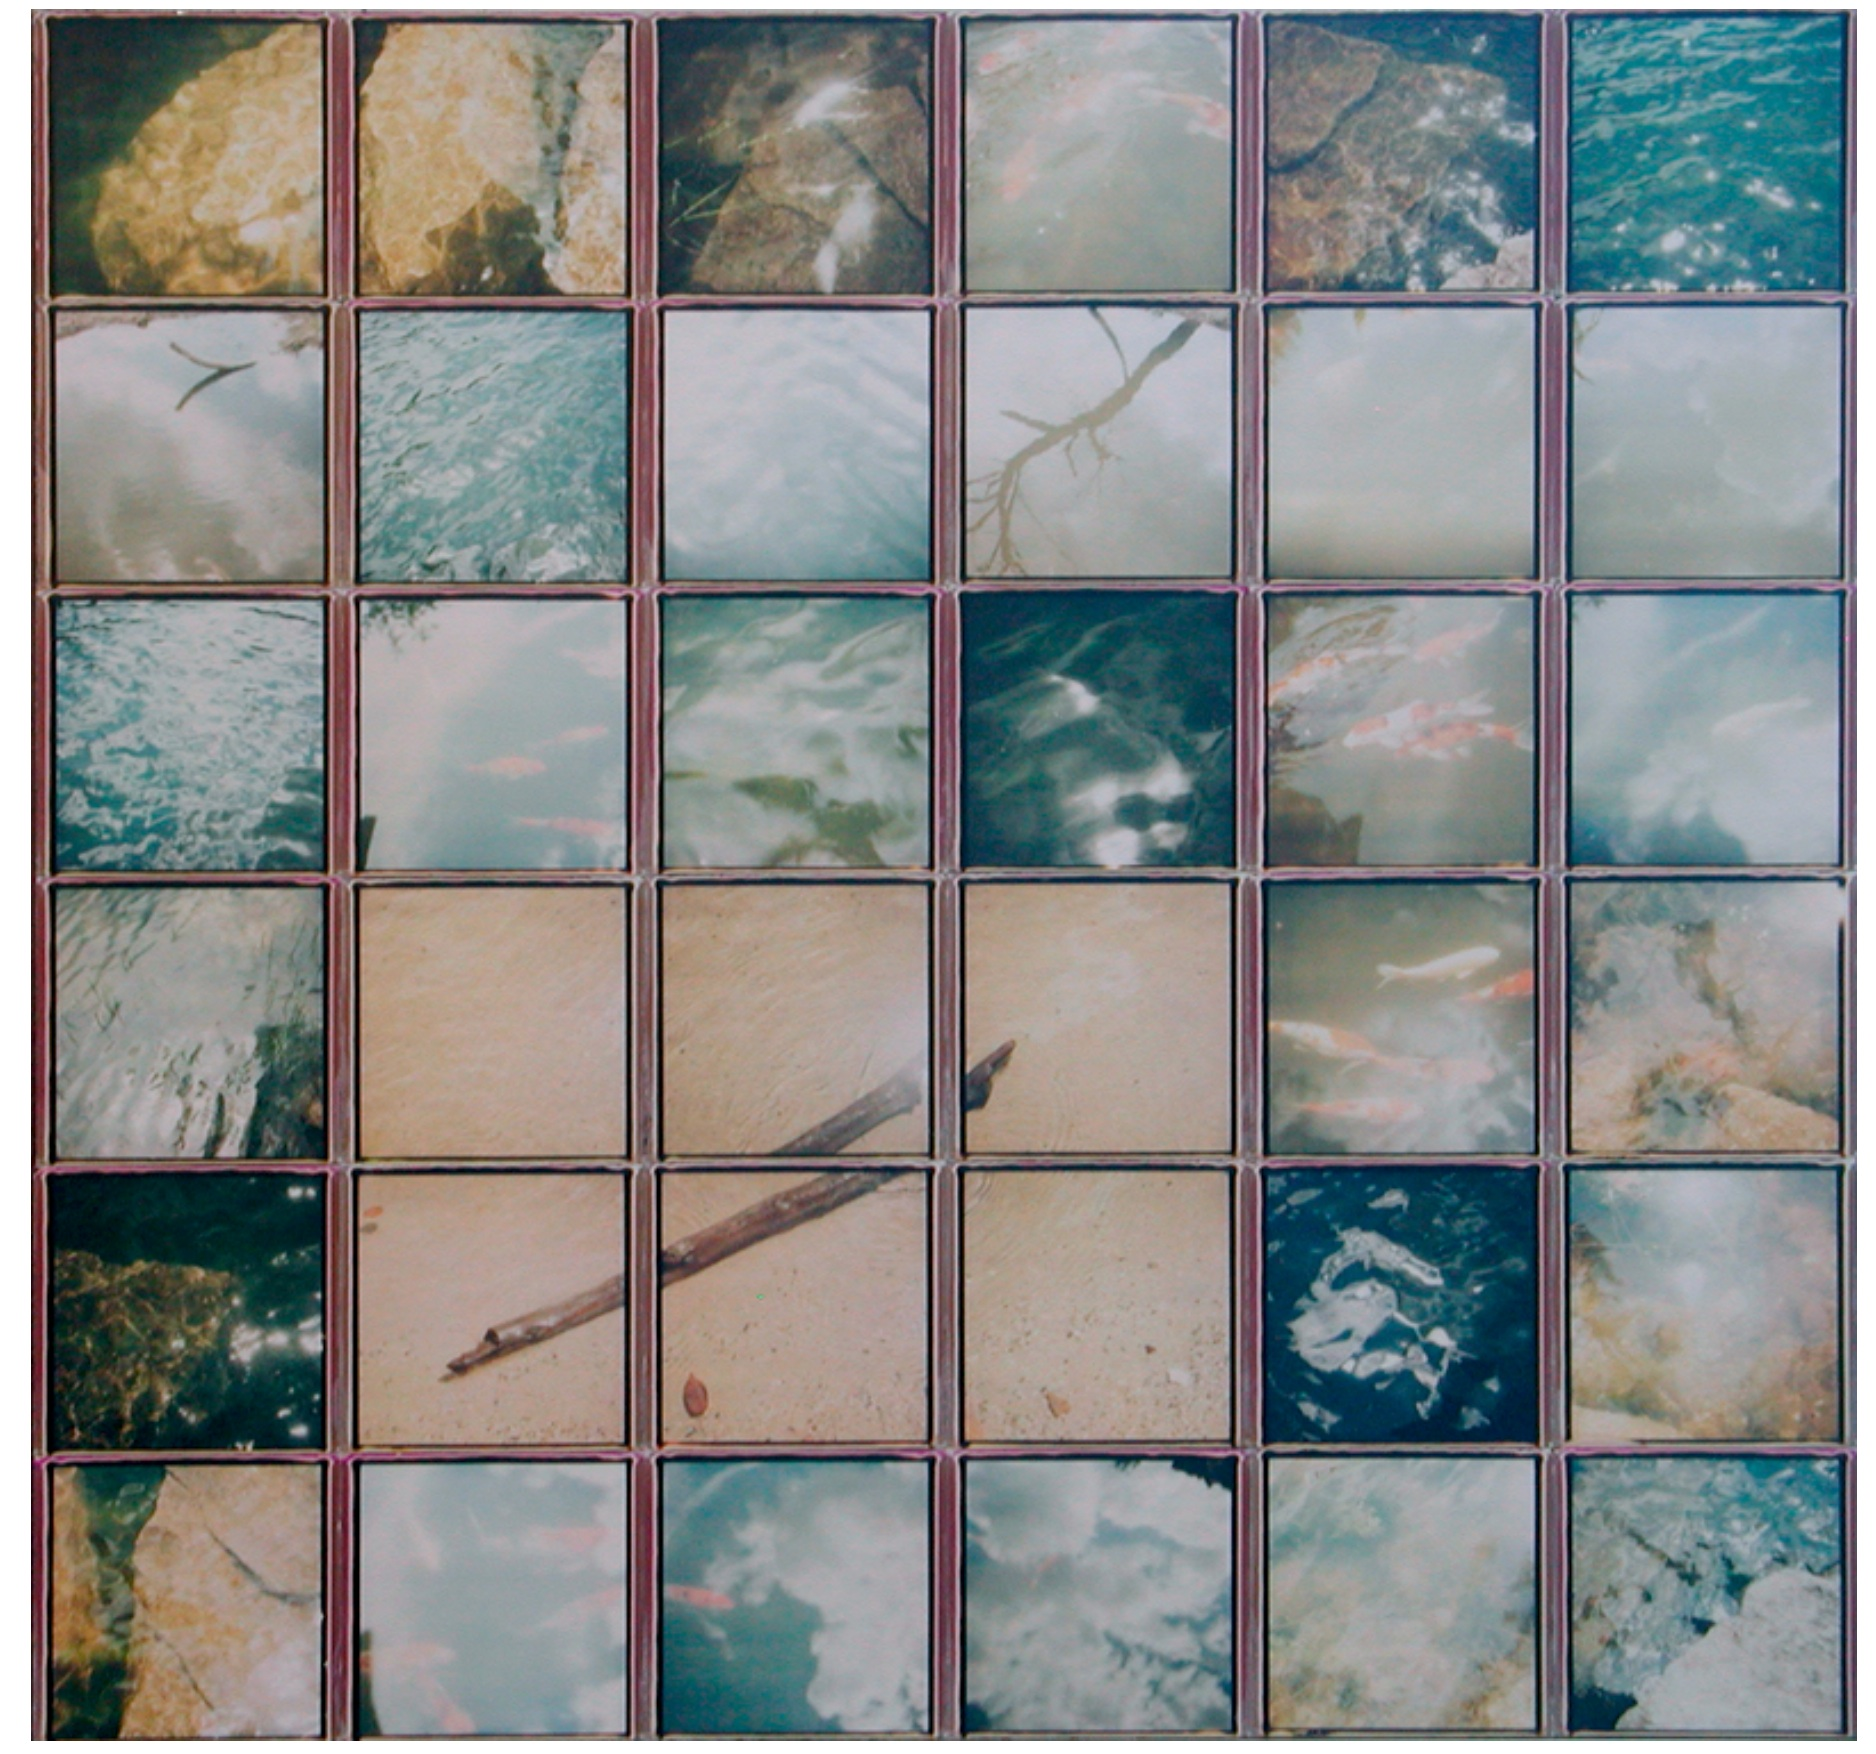 """Driftwood    by Patrick Winfield  Various Instant Films (Polaroid 600 Film, SX70 Film) on Panel,  22"""" x 21"""", 2017"""